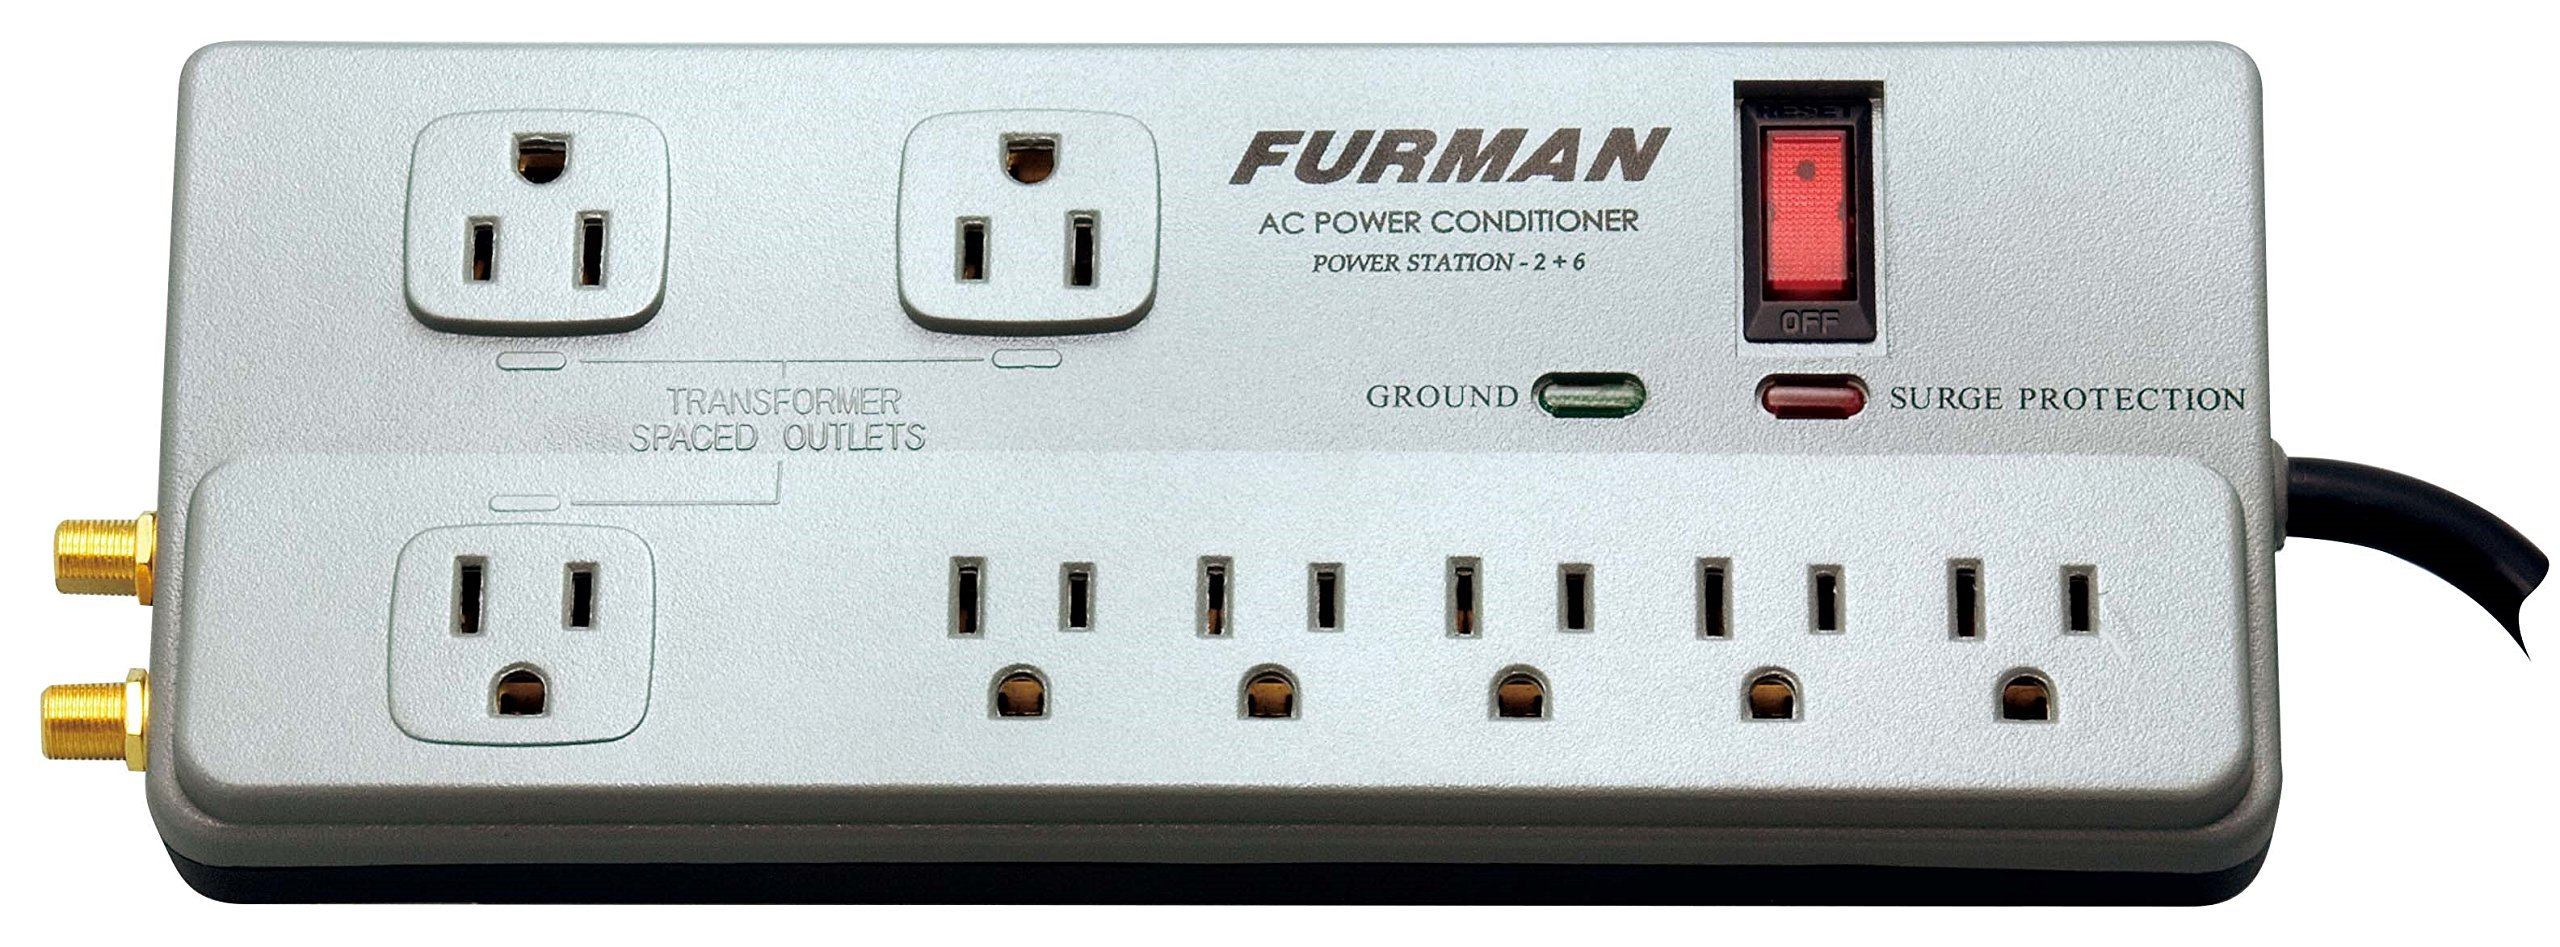 Best Rated In Power Conditioners Helpful Customer Reviews Home Network Using Electrical Wiring On Popscreen Furman Pst 2 6 Station Product Image